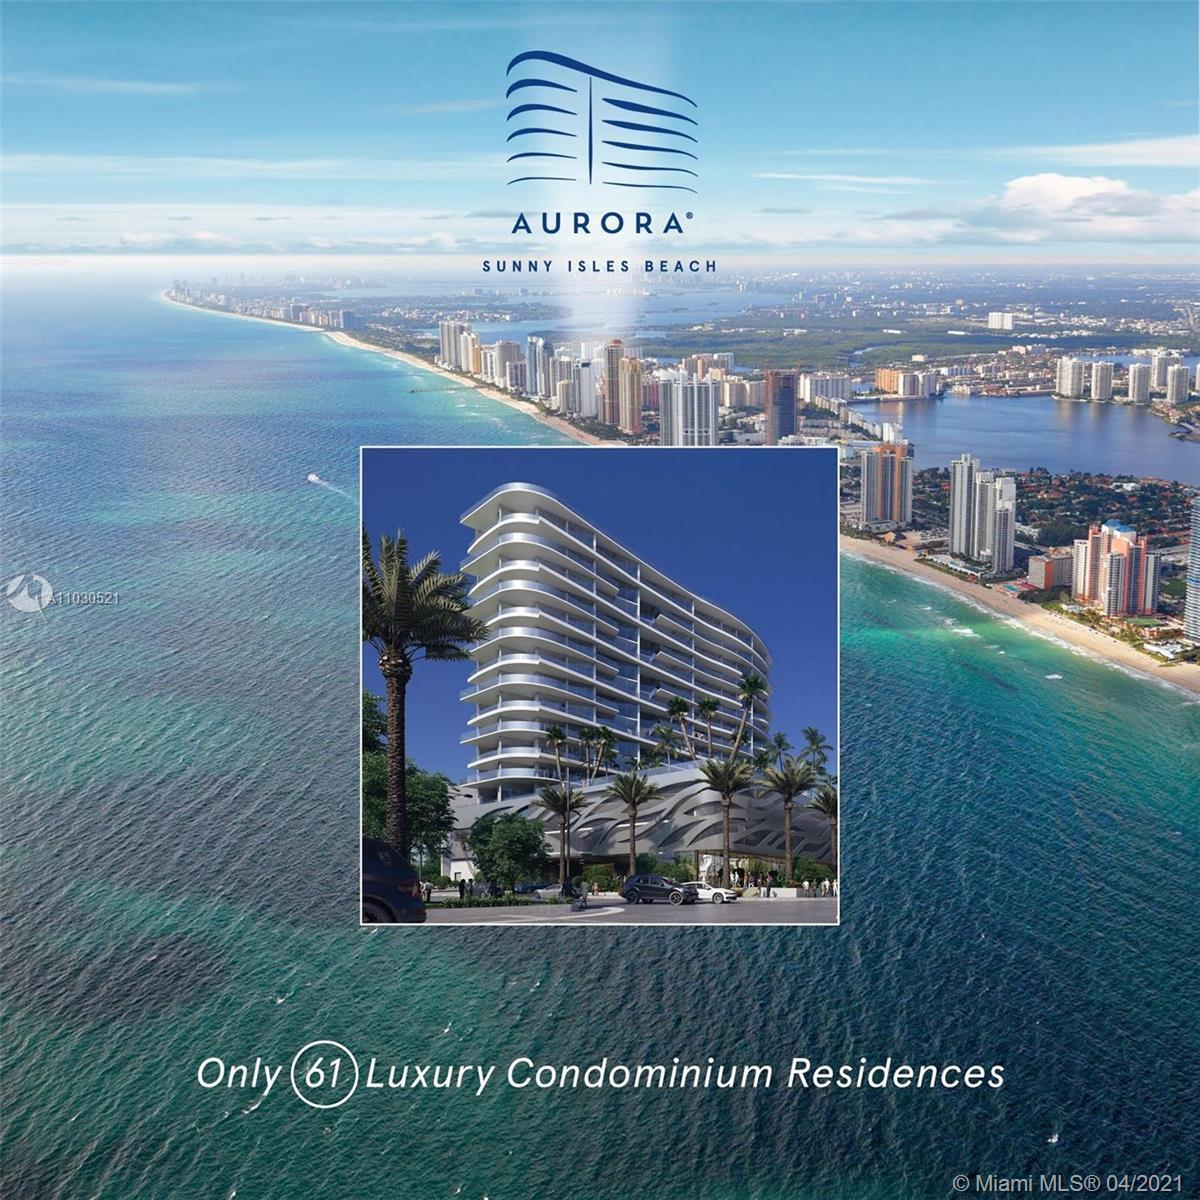 Pre-construction unit in Aurora, Sunny Isles Beach, ready first quarter of 2022. 61 units in a luxur